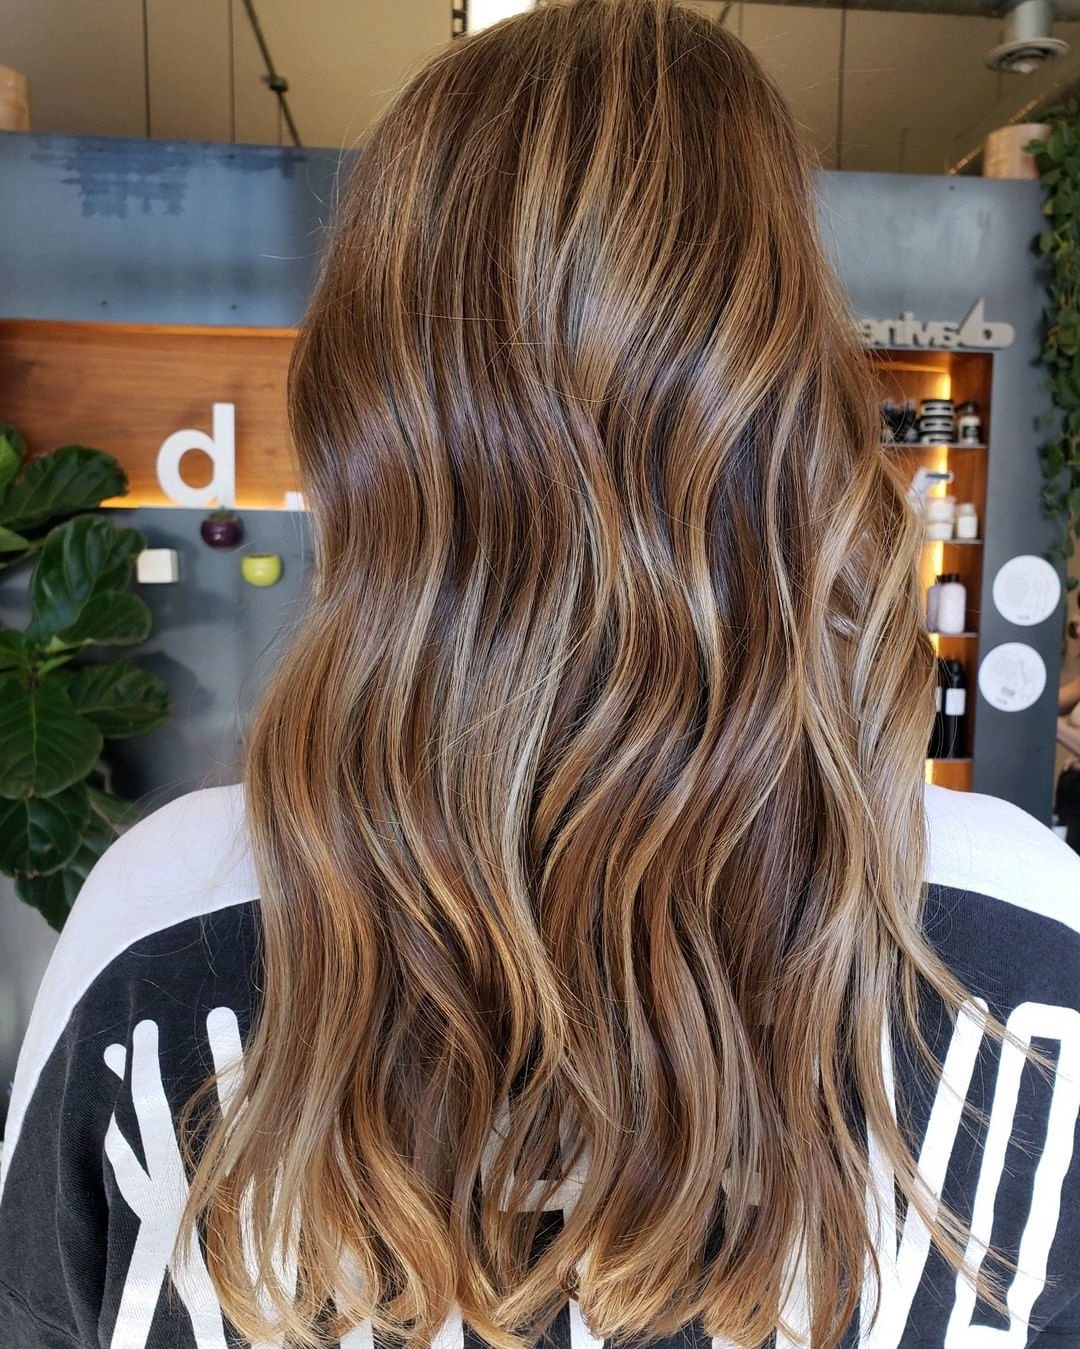 8 Best Blonde & Brunette Balayage Long Hairstyles 2021 For Well Known Blonde Balayage On Long Voluminous Hairstyles (View 4 of 20)